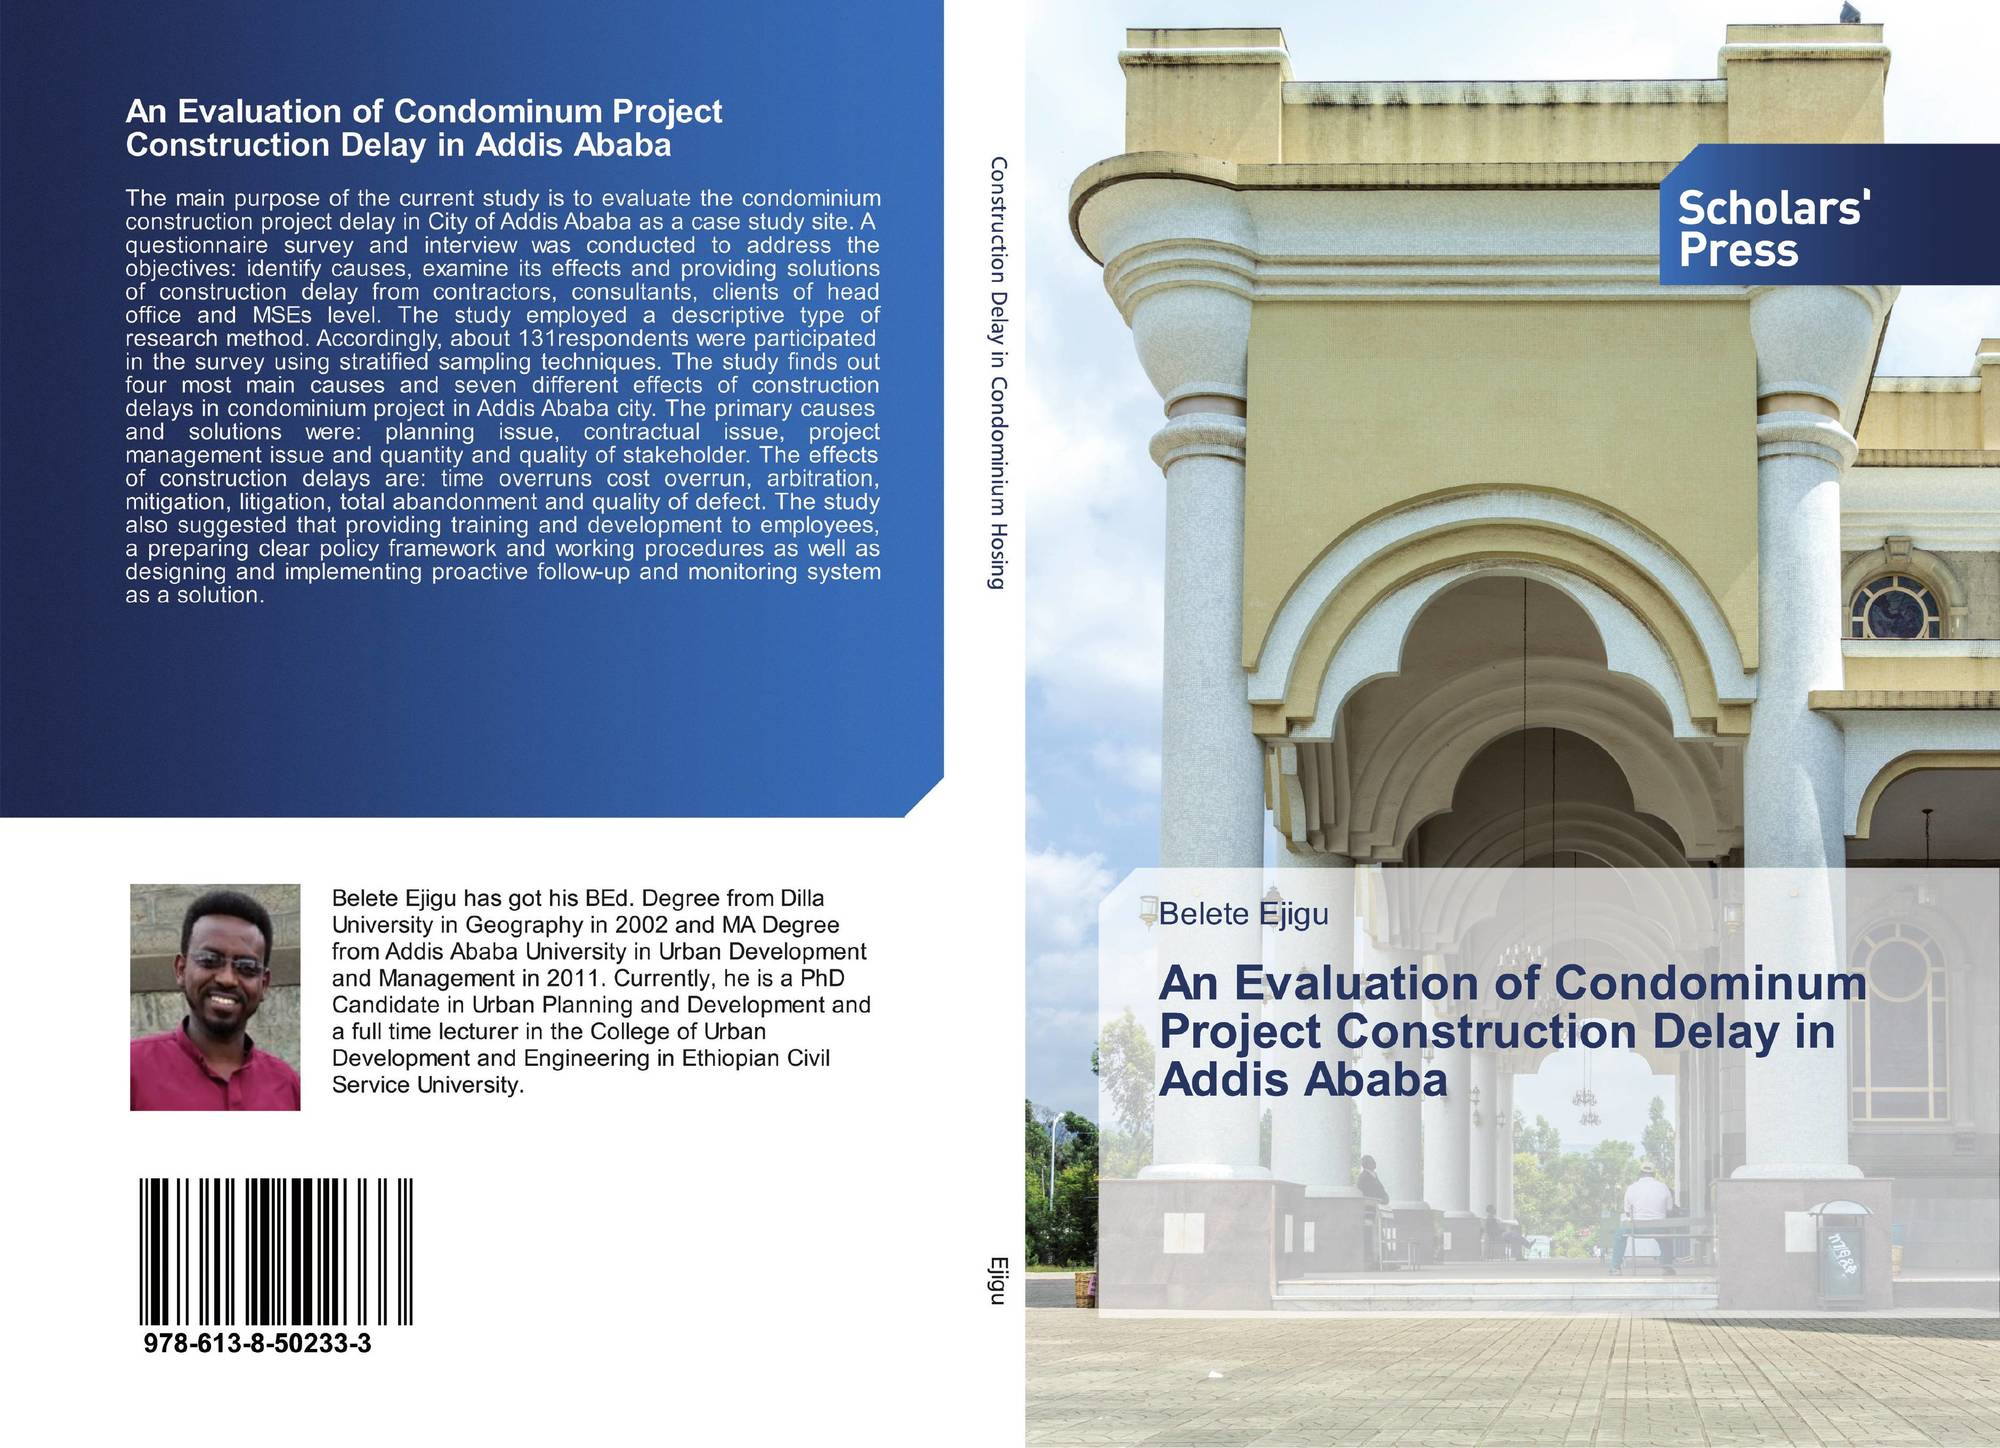 An Evaluation of Condominum Project Construction Delay in Addis